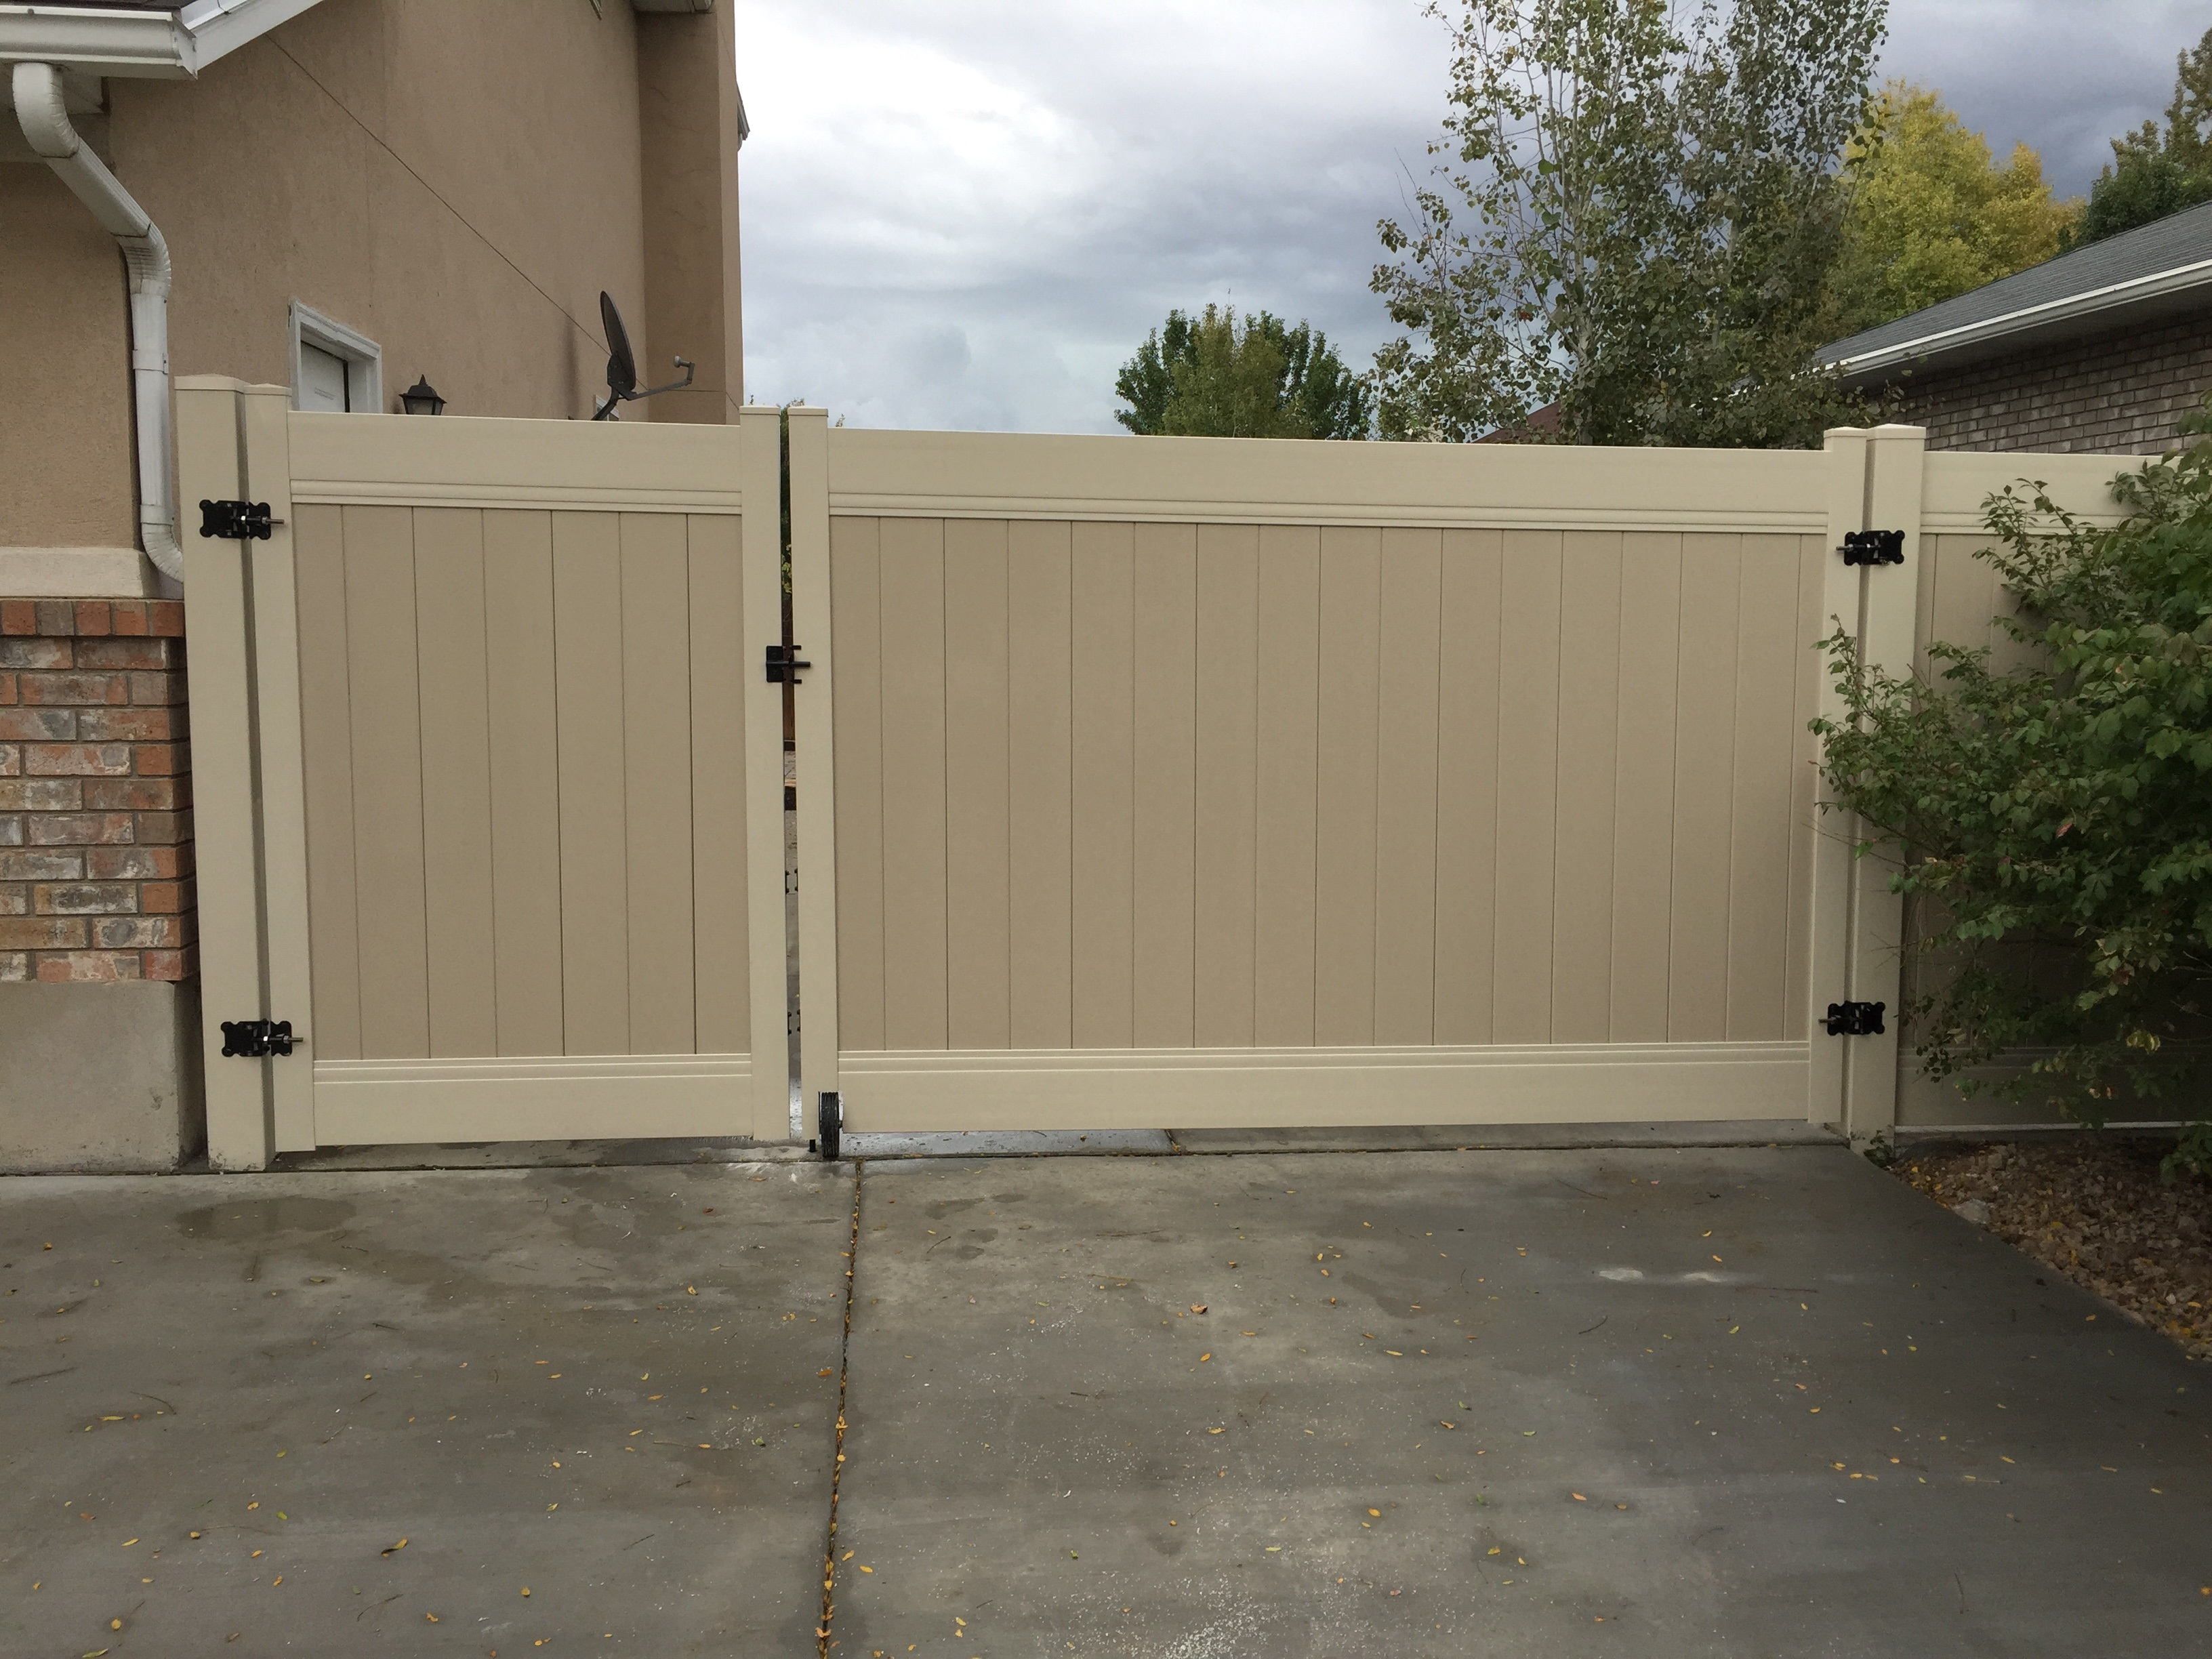 Vinyl Fence Gate For Vinyl Fence Gate Steel Framed Gates From Crown Vinyl Fence Syracuse Layton